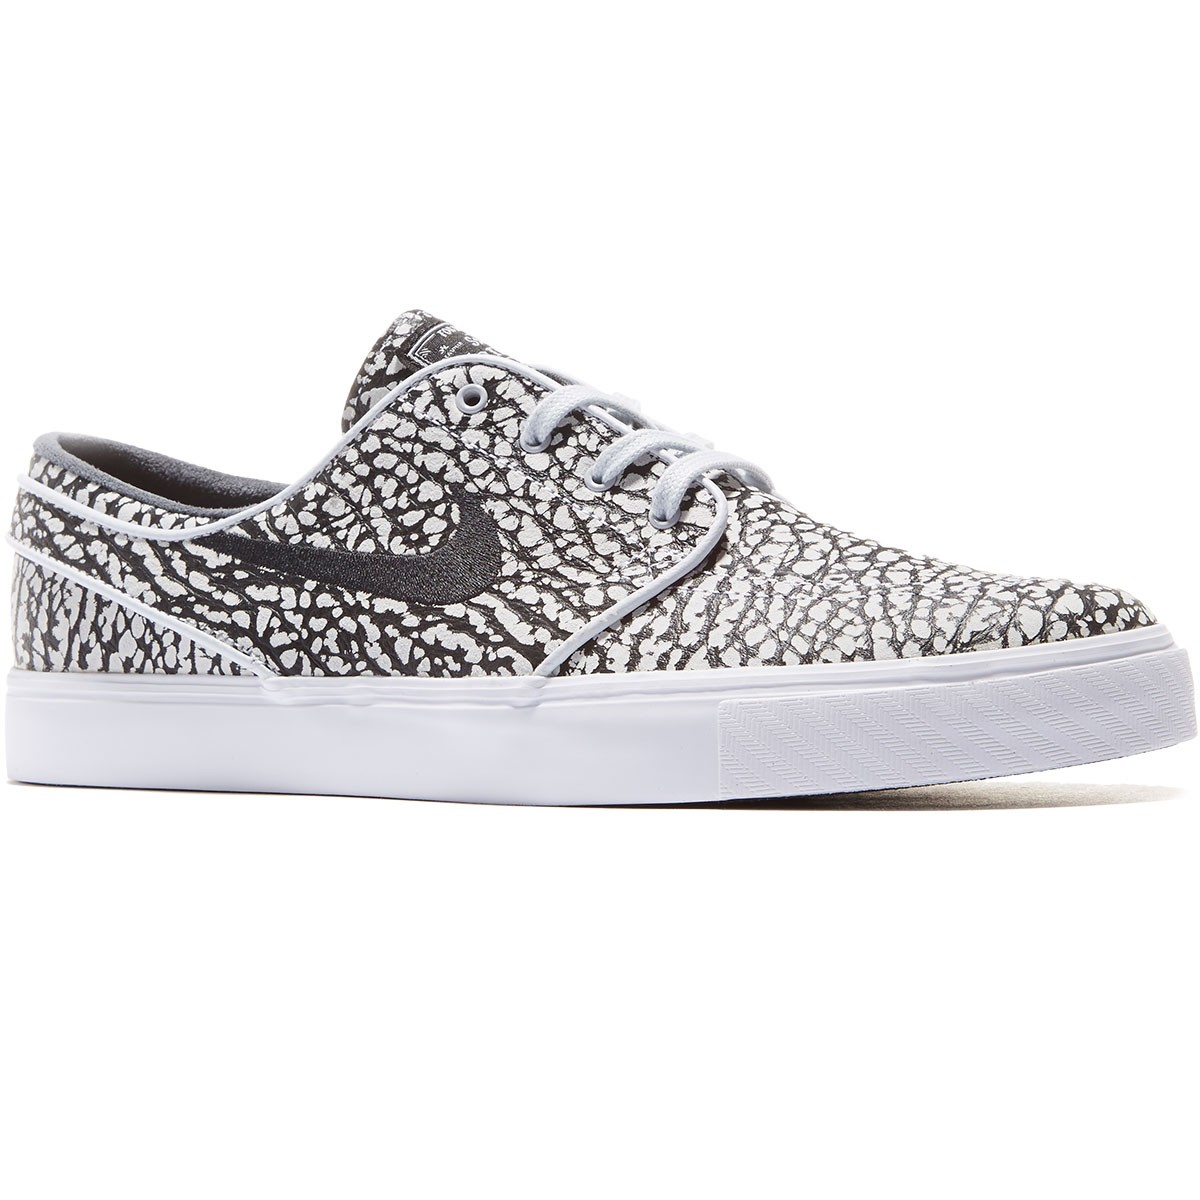 c3692c8ceb Nike Zoom Stefan Janoski Elite Road Pack Shoes - Pure Platinum/White/Black -